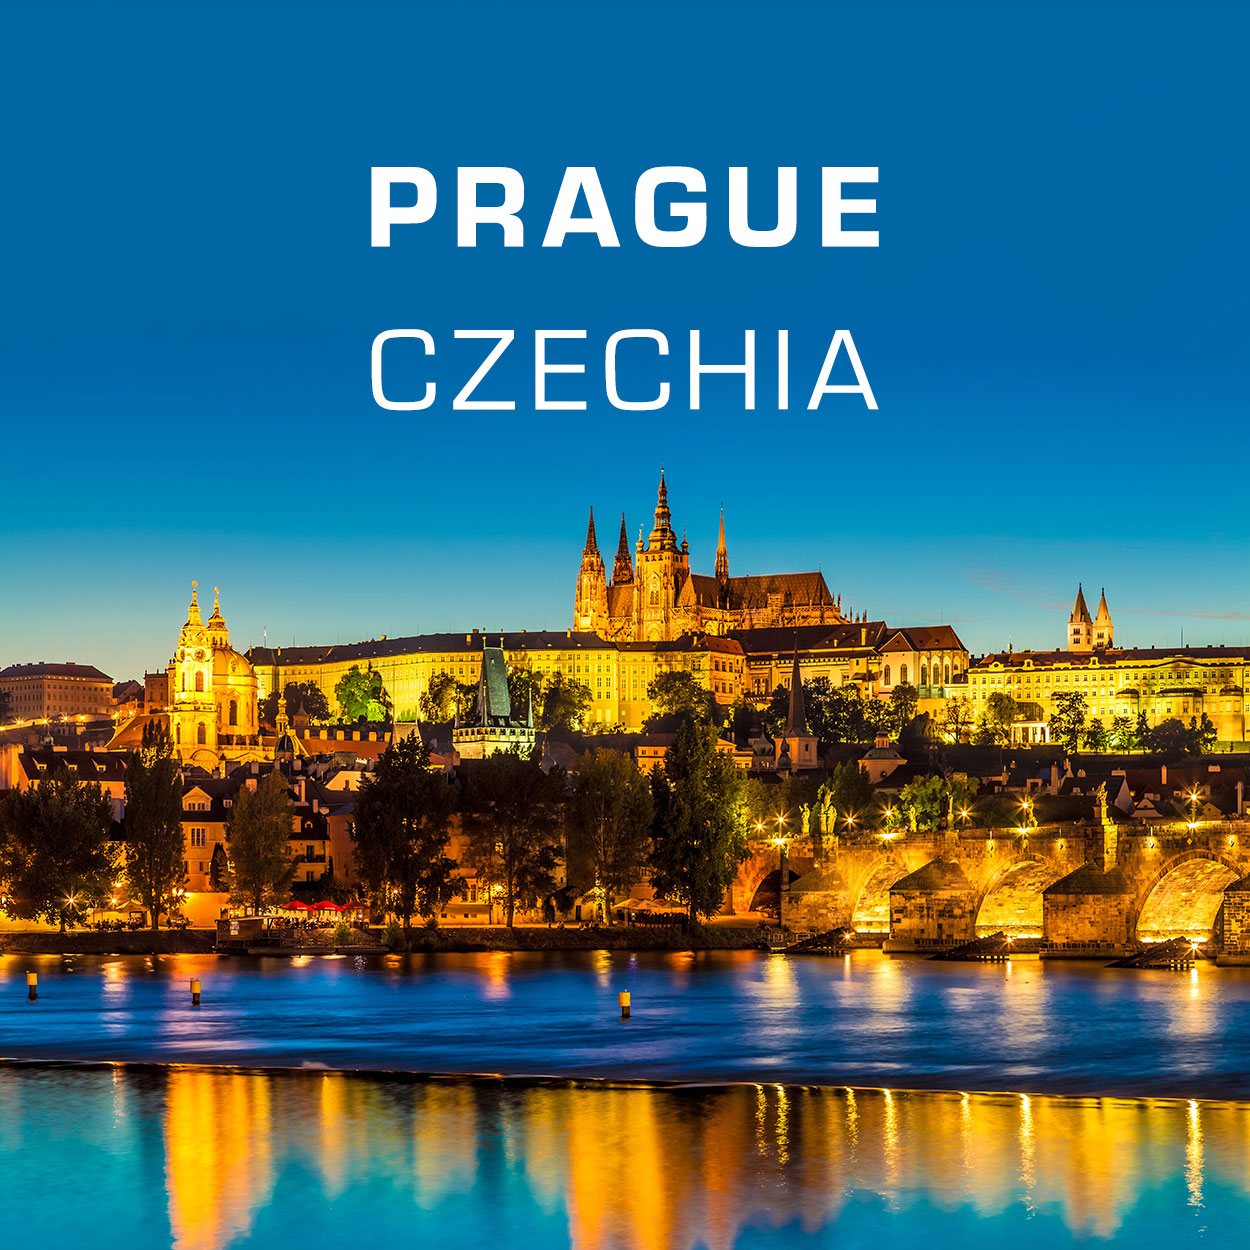 Fridge Magnets - Prague Skyline with the castle and Charles Bridge at Night, Czechia